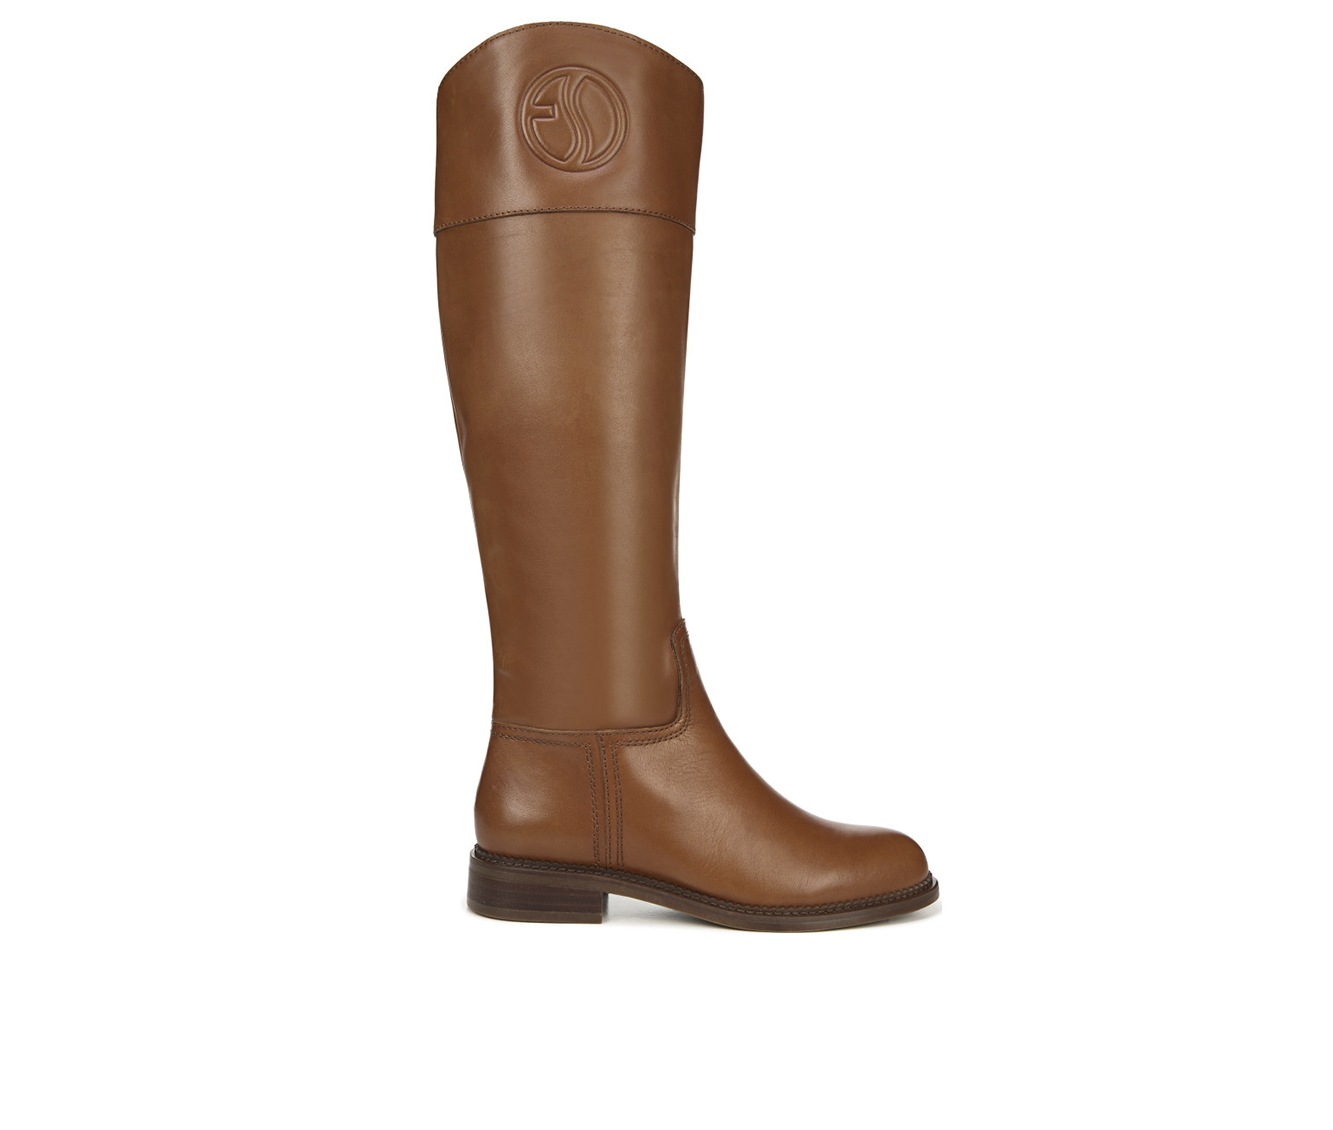 Franco Sarto Hudson Women's Boots (Brown - Leather)